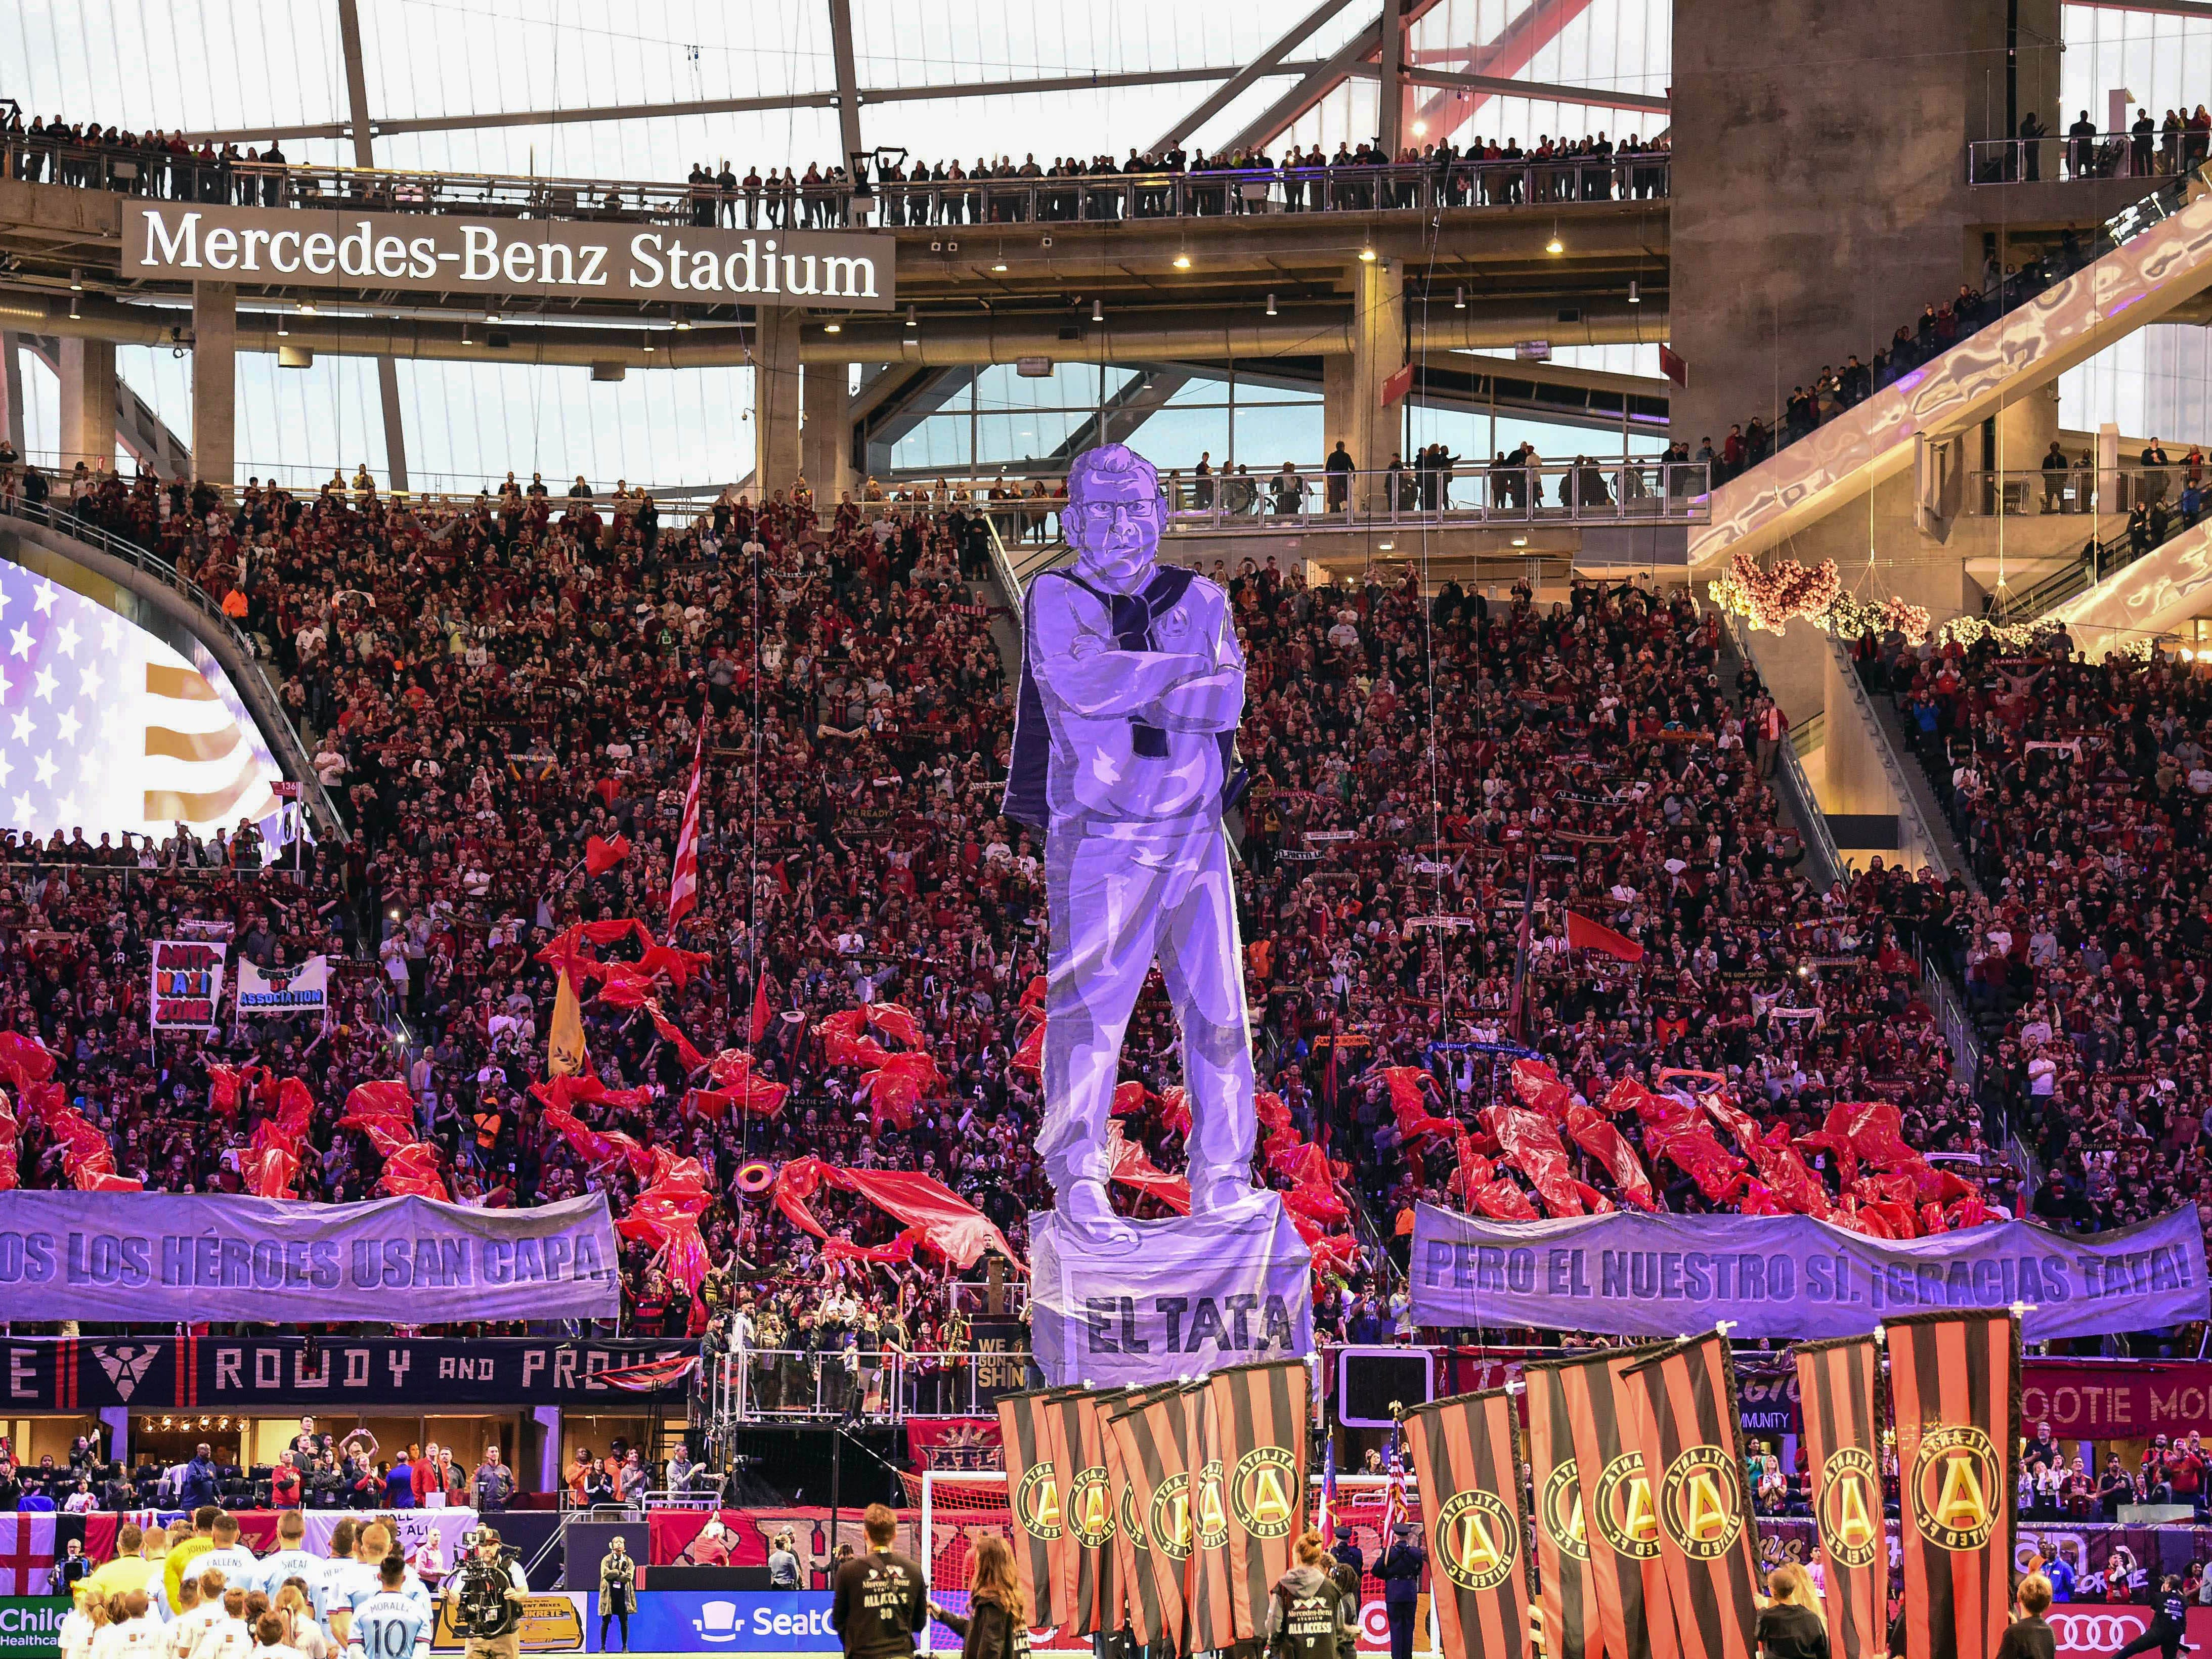 Atlanta United fans hoist a tifo of coach Gerardo Martino before the match against New York City FC in the Eastern Conference semifinal at Mercedes-Benz Stadium.